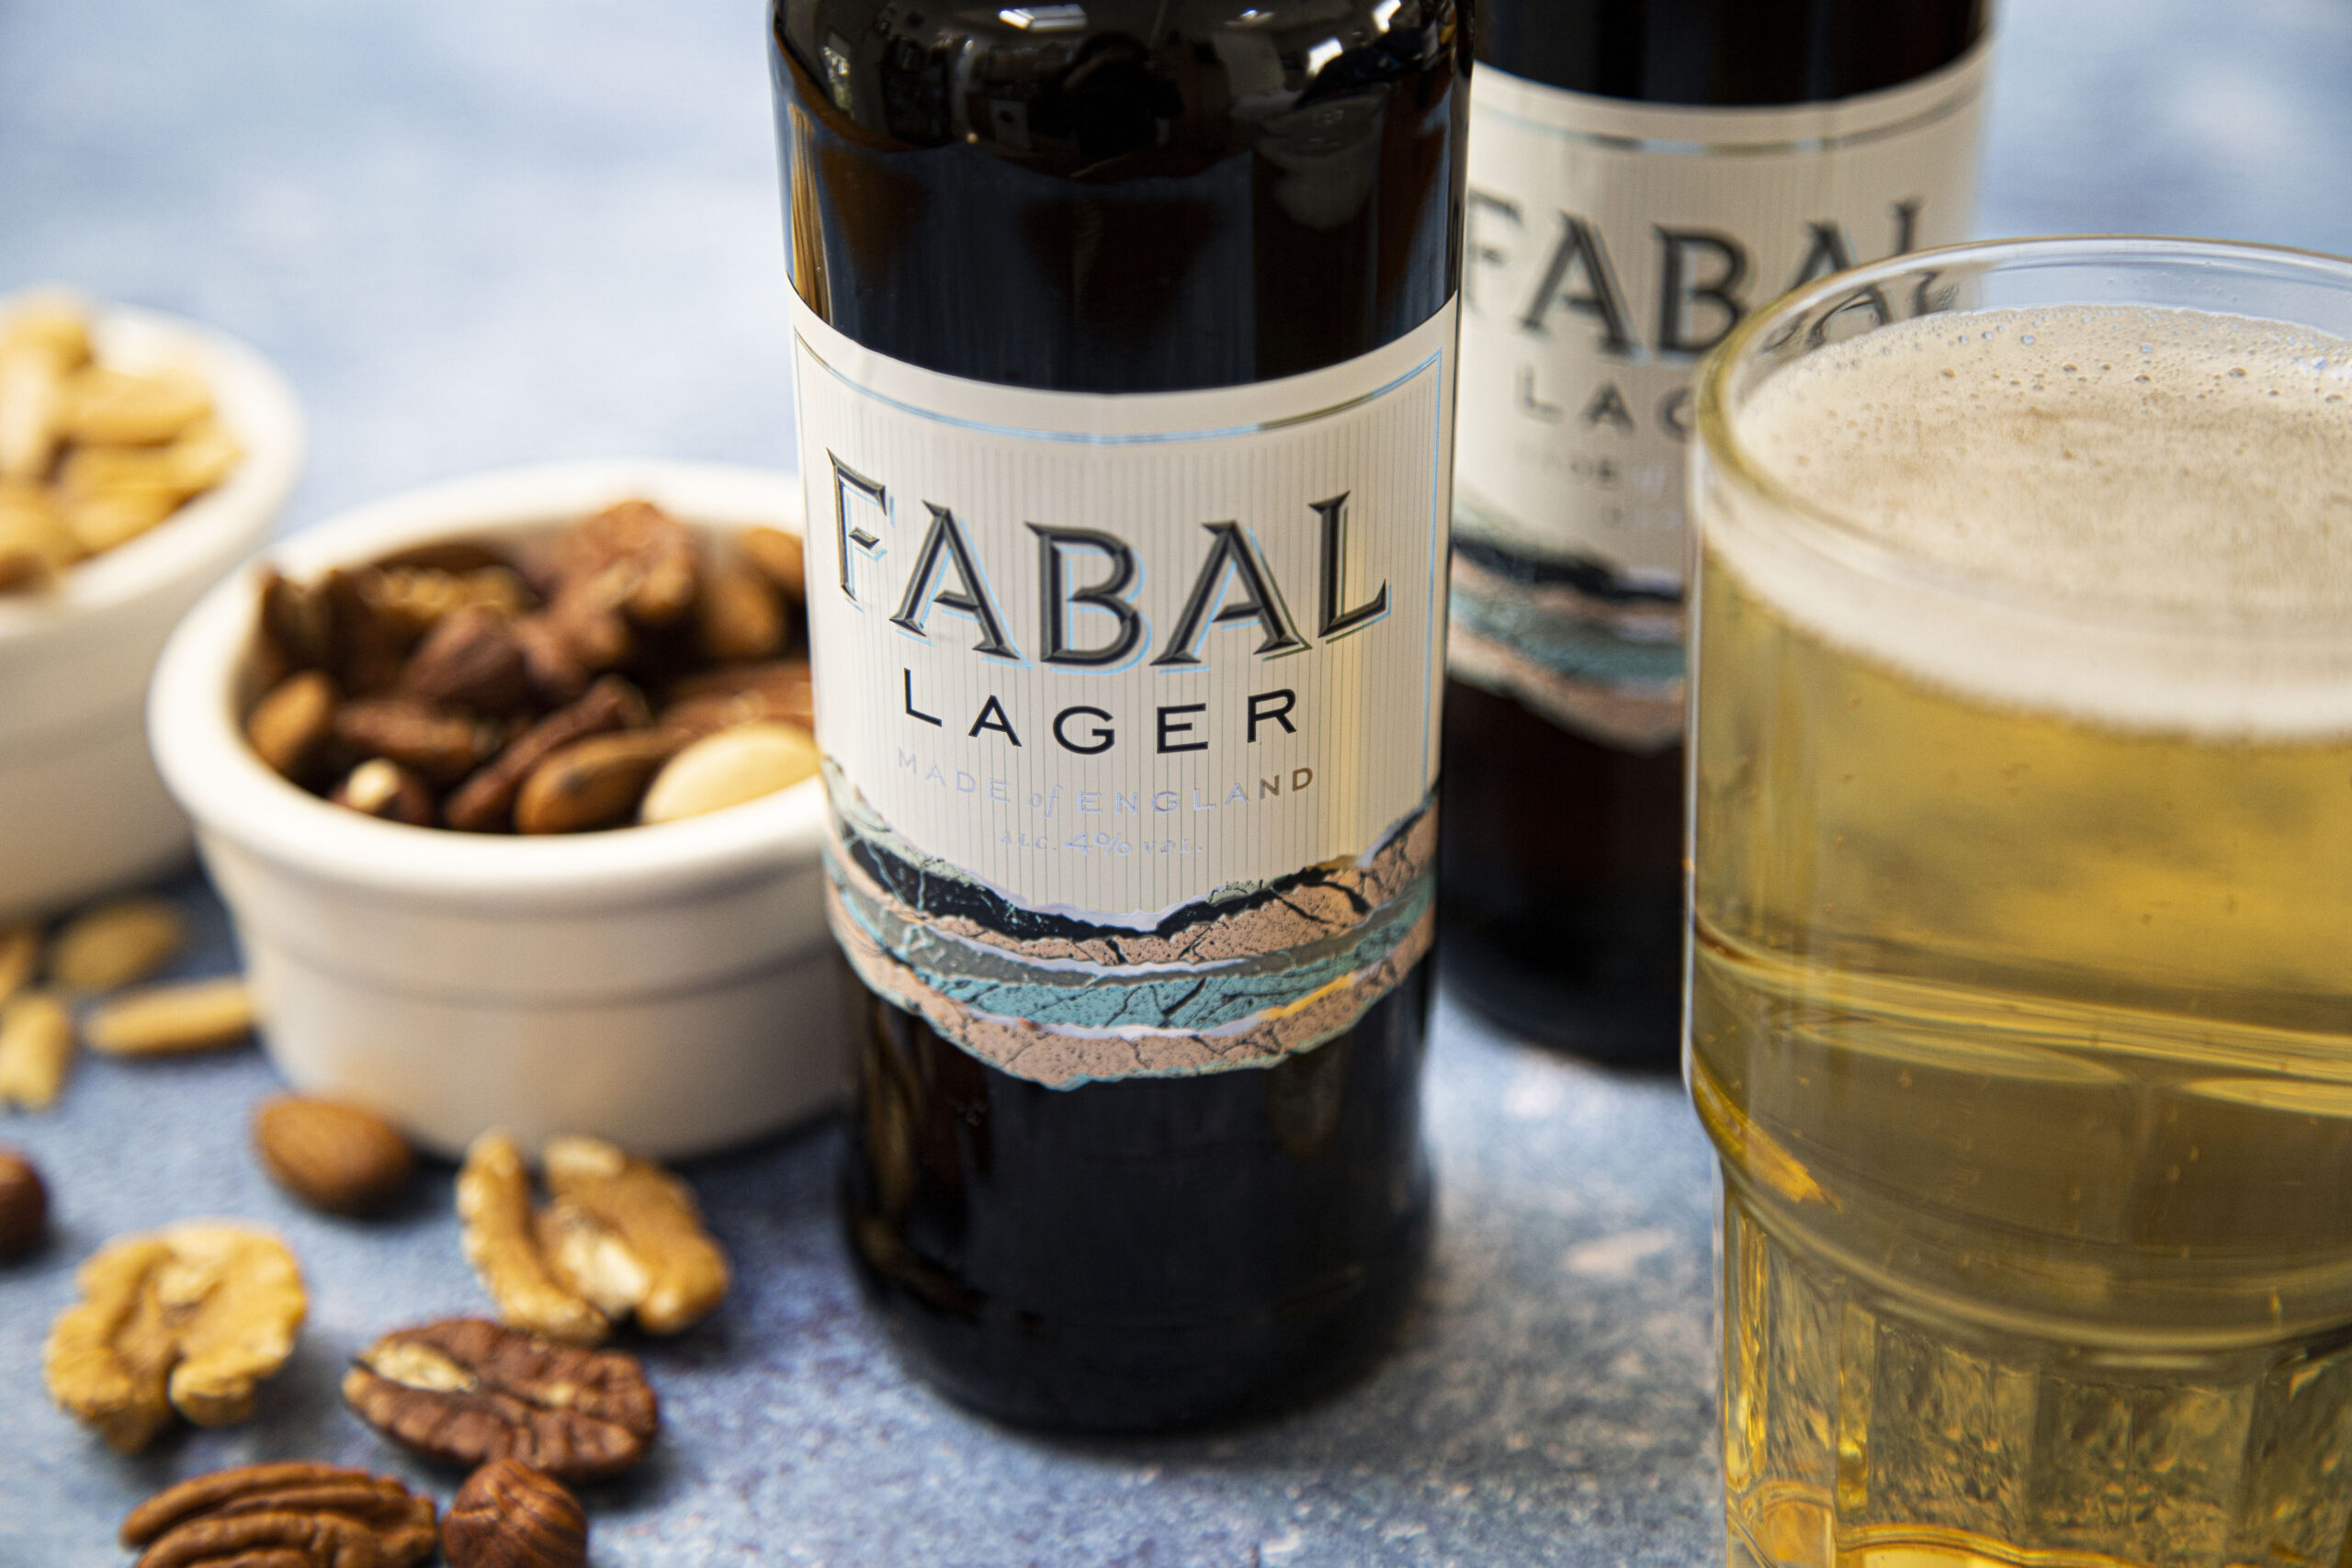 Fabal lager with nuts for veganuary